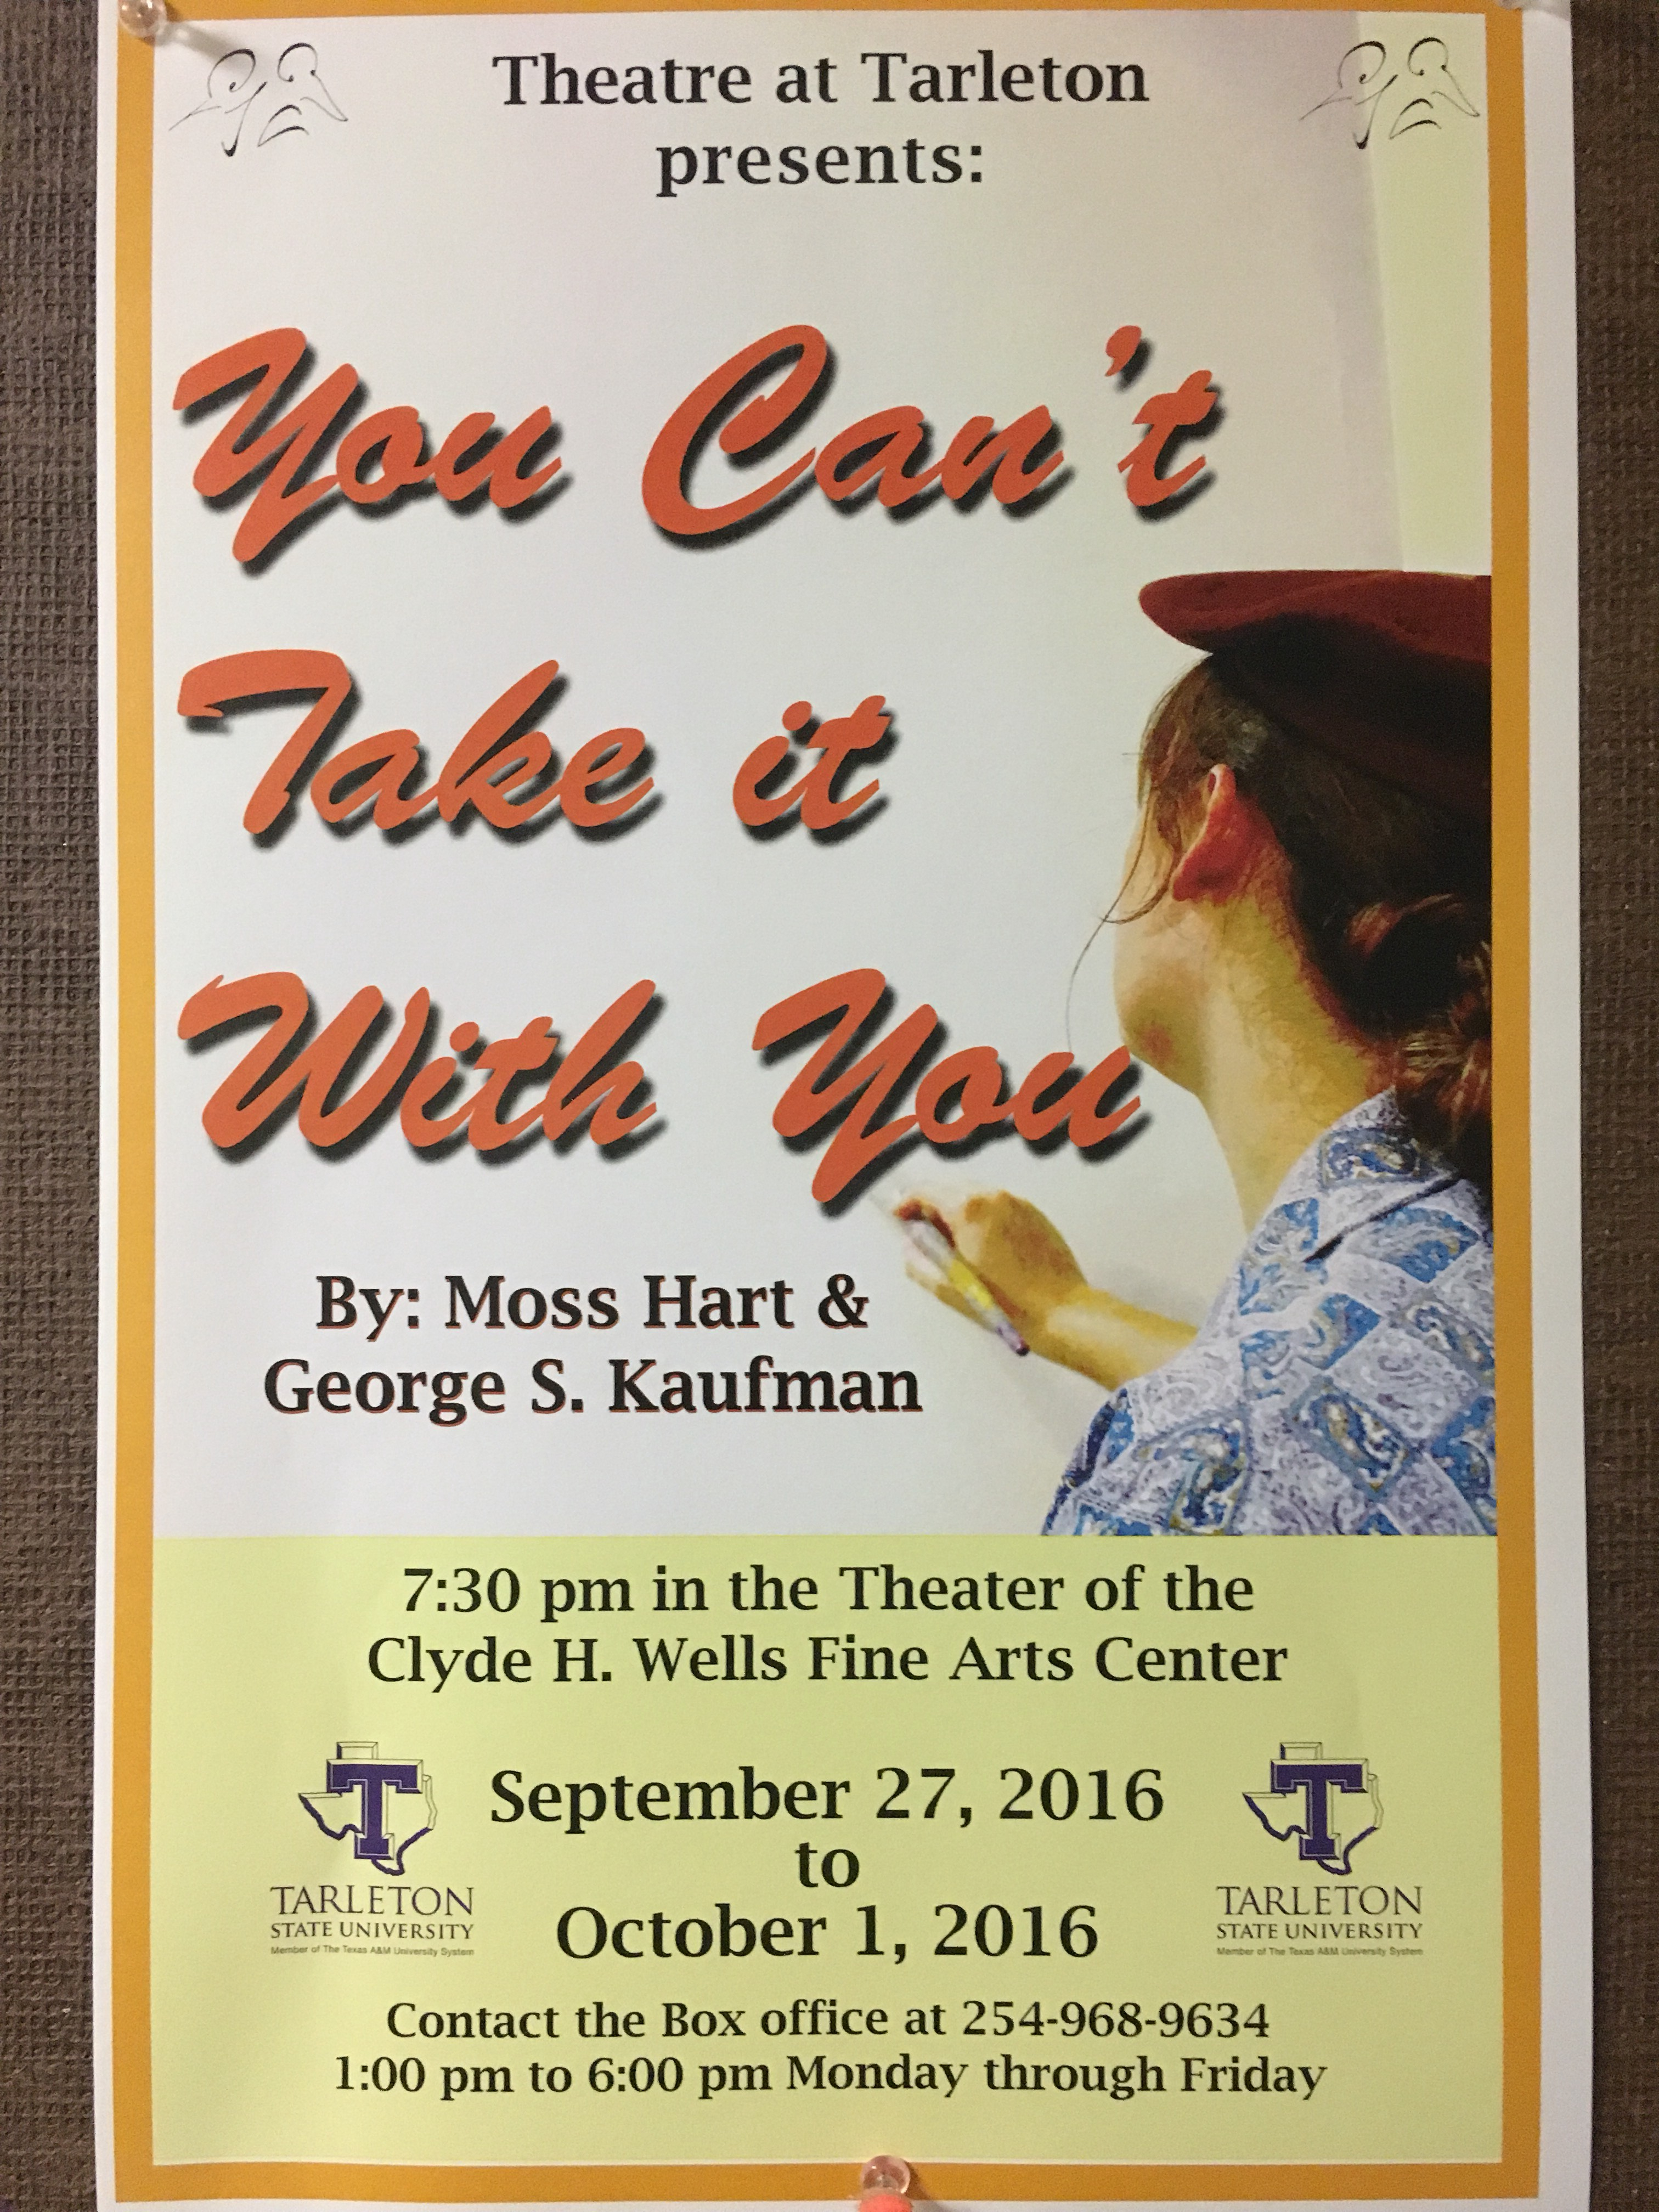 Tarleton theater's first show of the season: 'You Can't Take It With You'